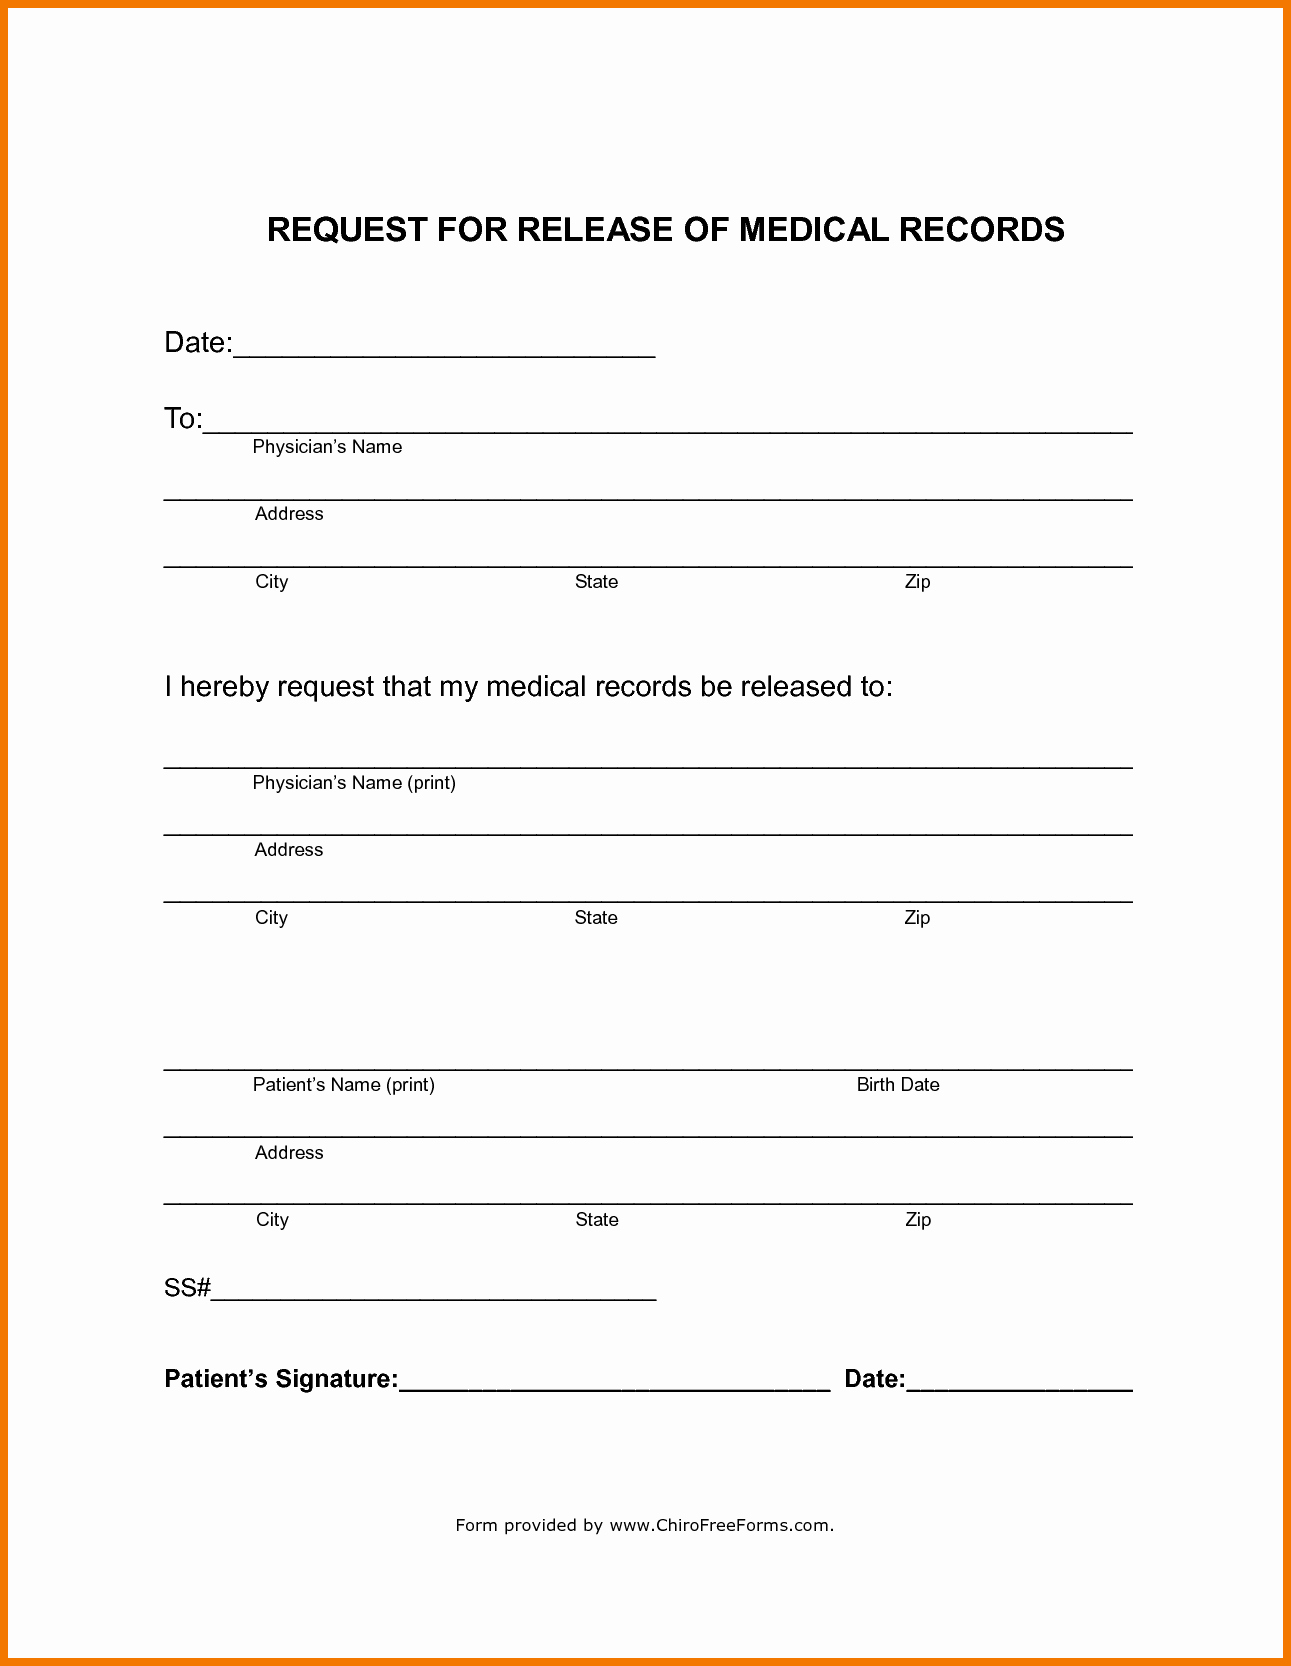 Image Release form Template Fresh Medical Record Release form Template